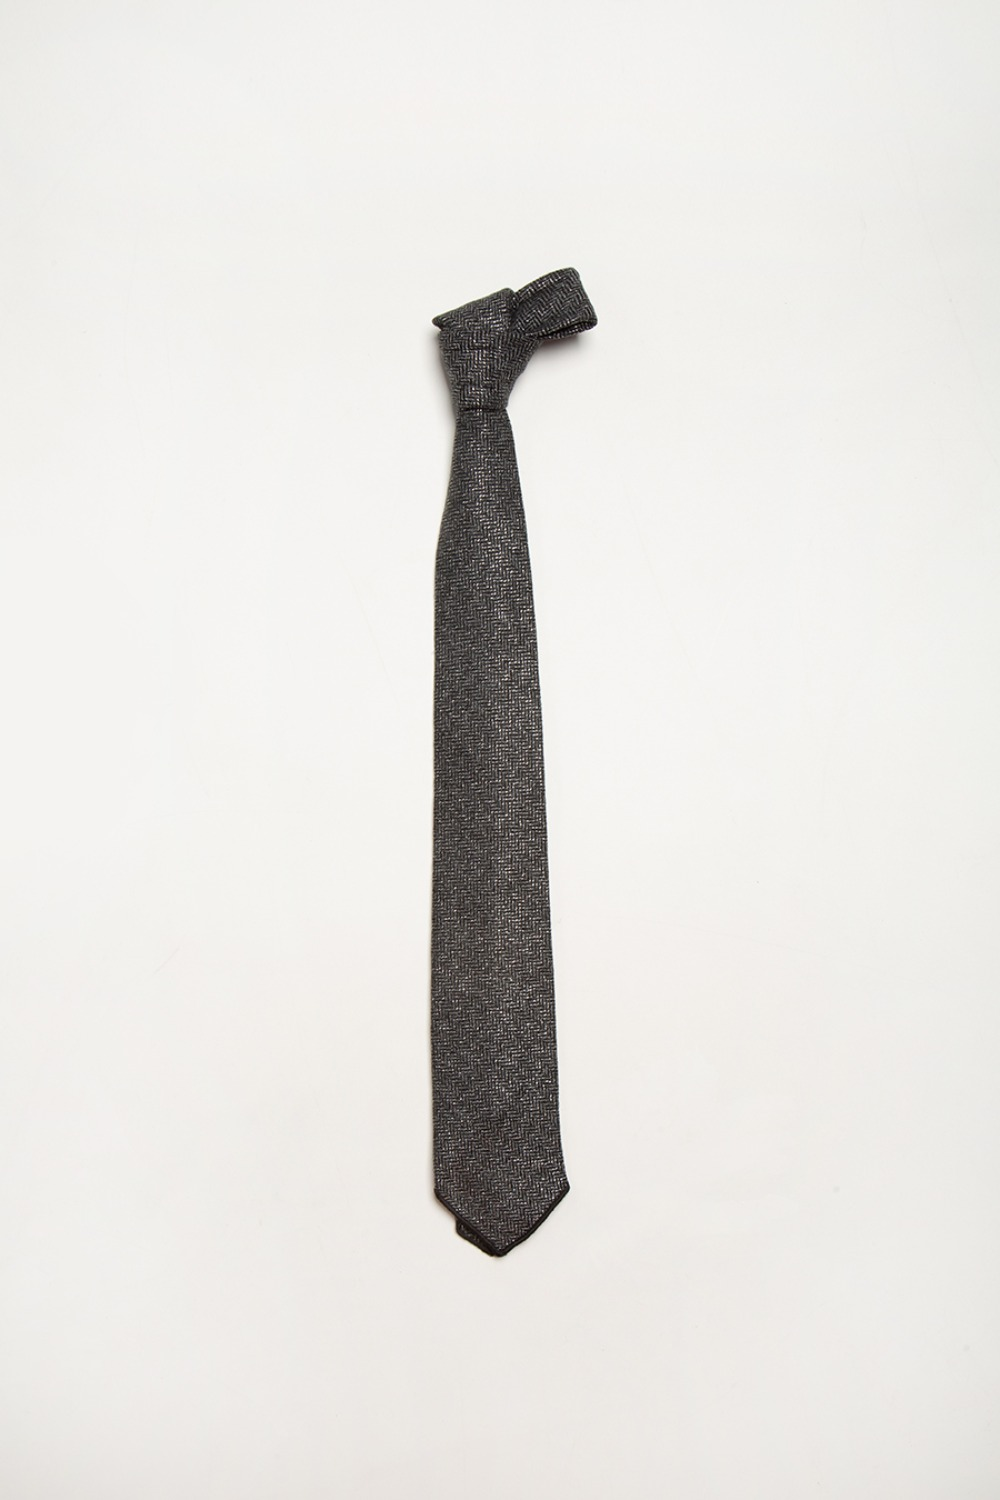 NECK TIE GREY WOOL POLY LUREX HERRINGBONE